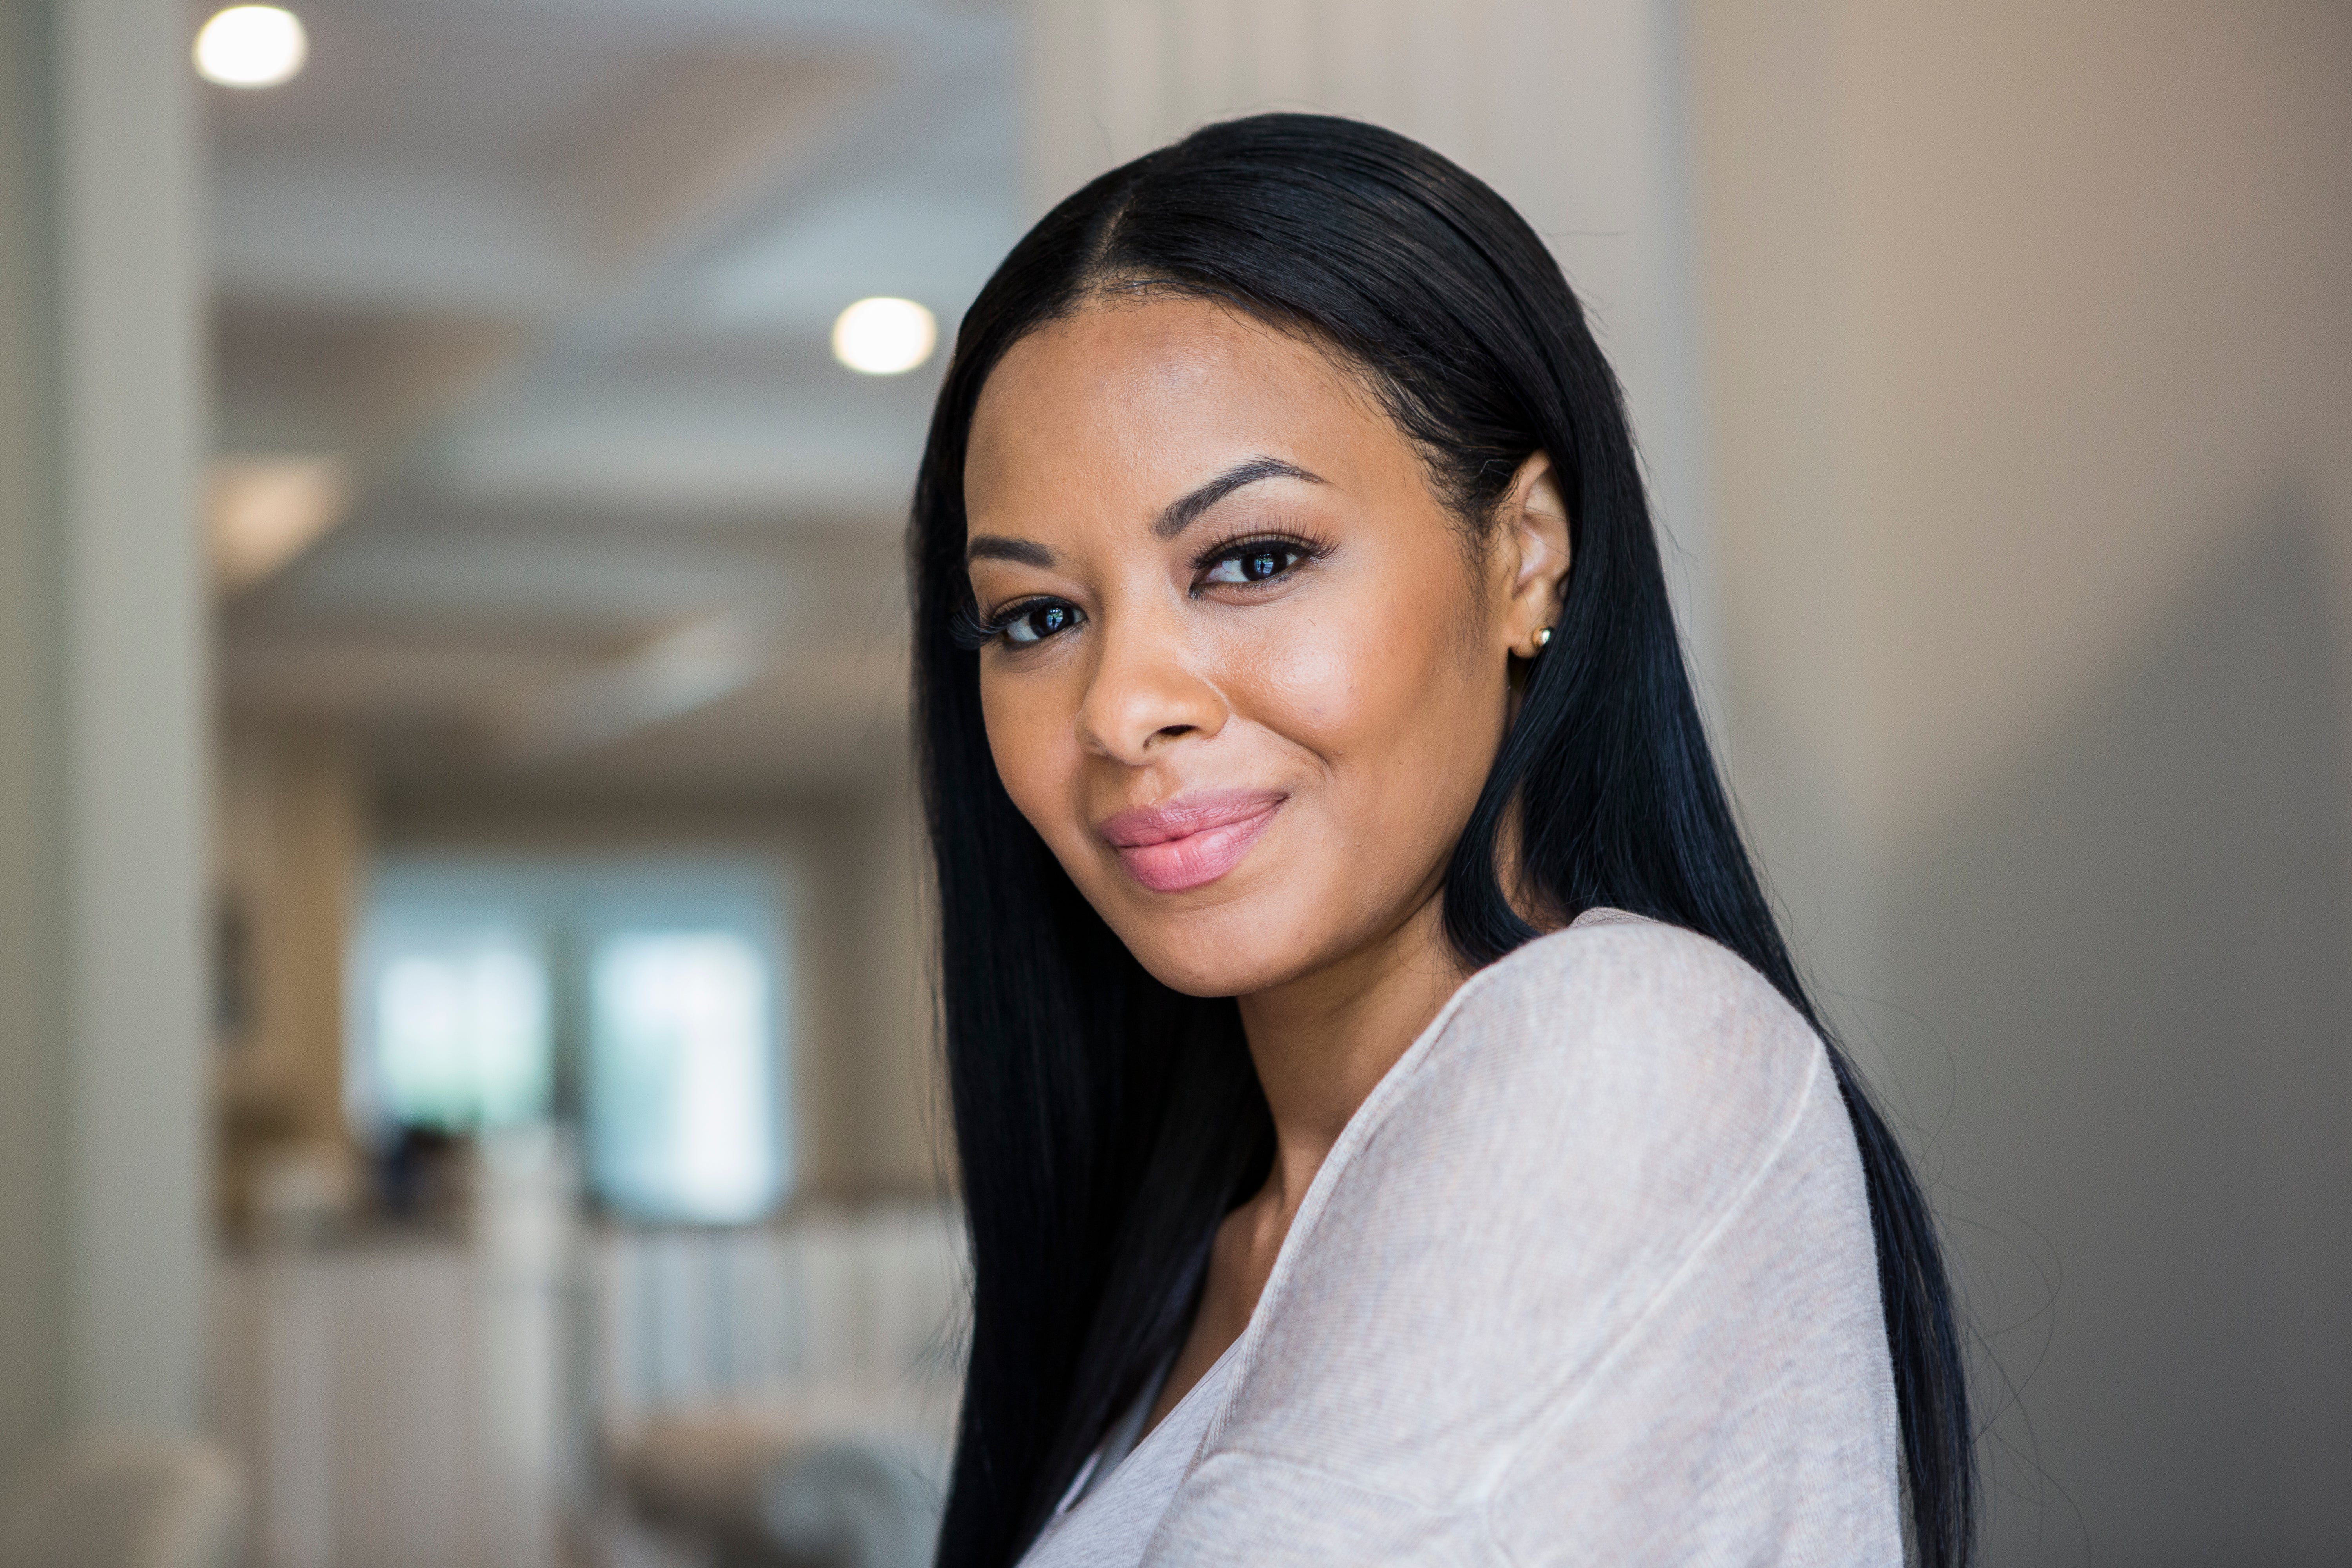 Sponsored: Vanessa Simmons Shares Her Radiant Life